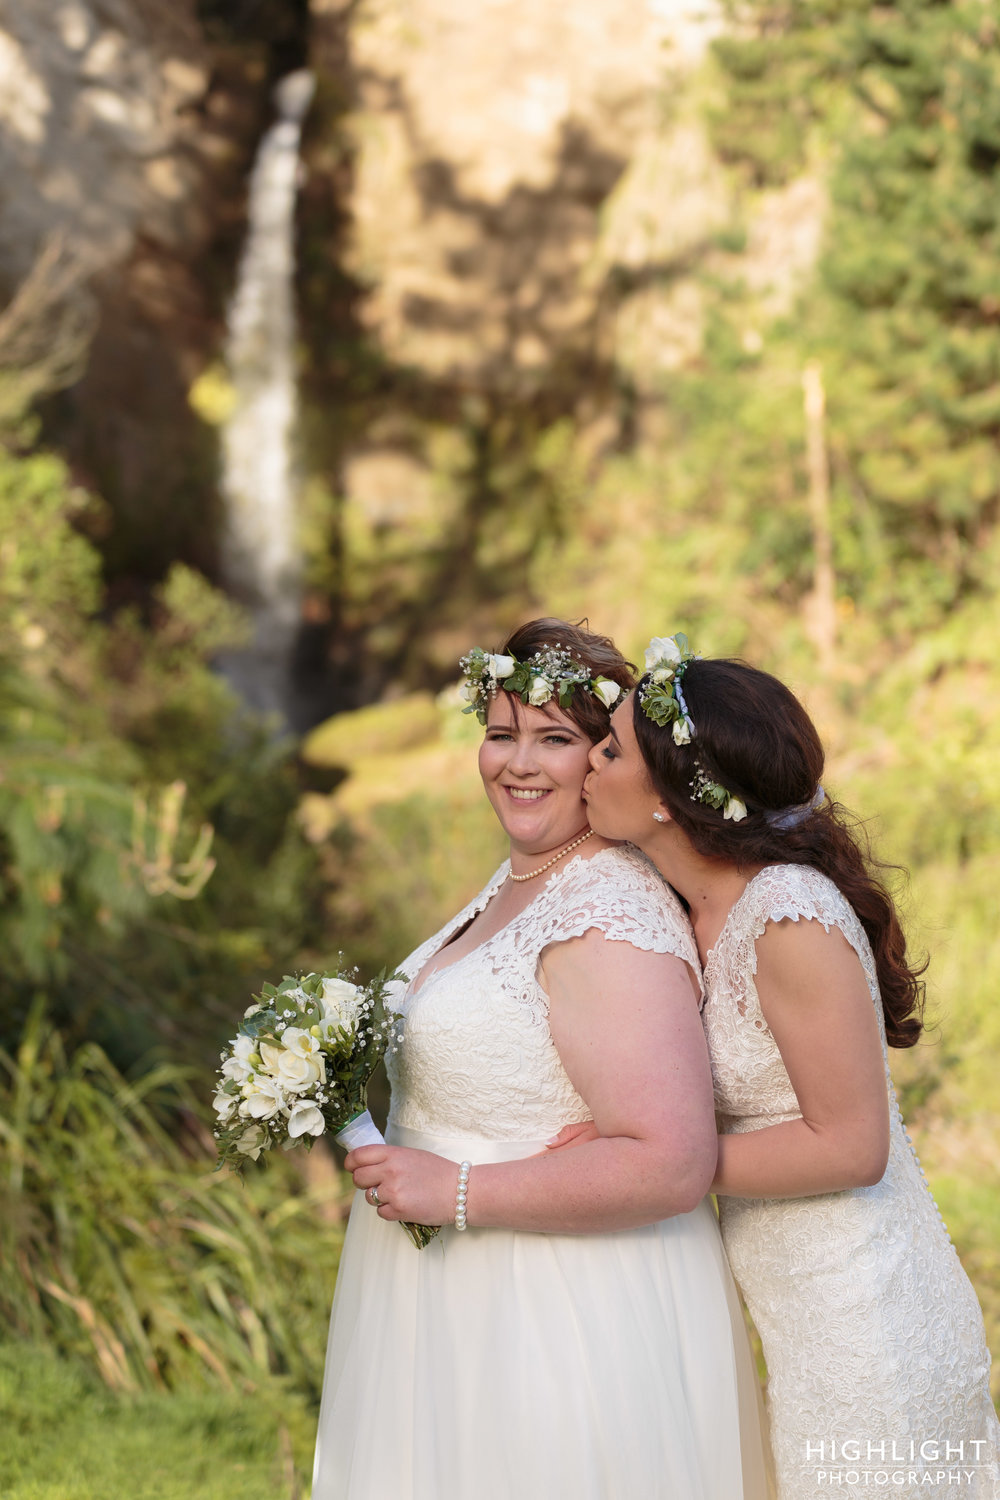 highlight_wedding_photography_makoura_lodge_manawatu_new_zealand-117.jpg